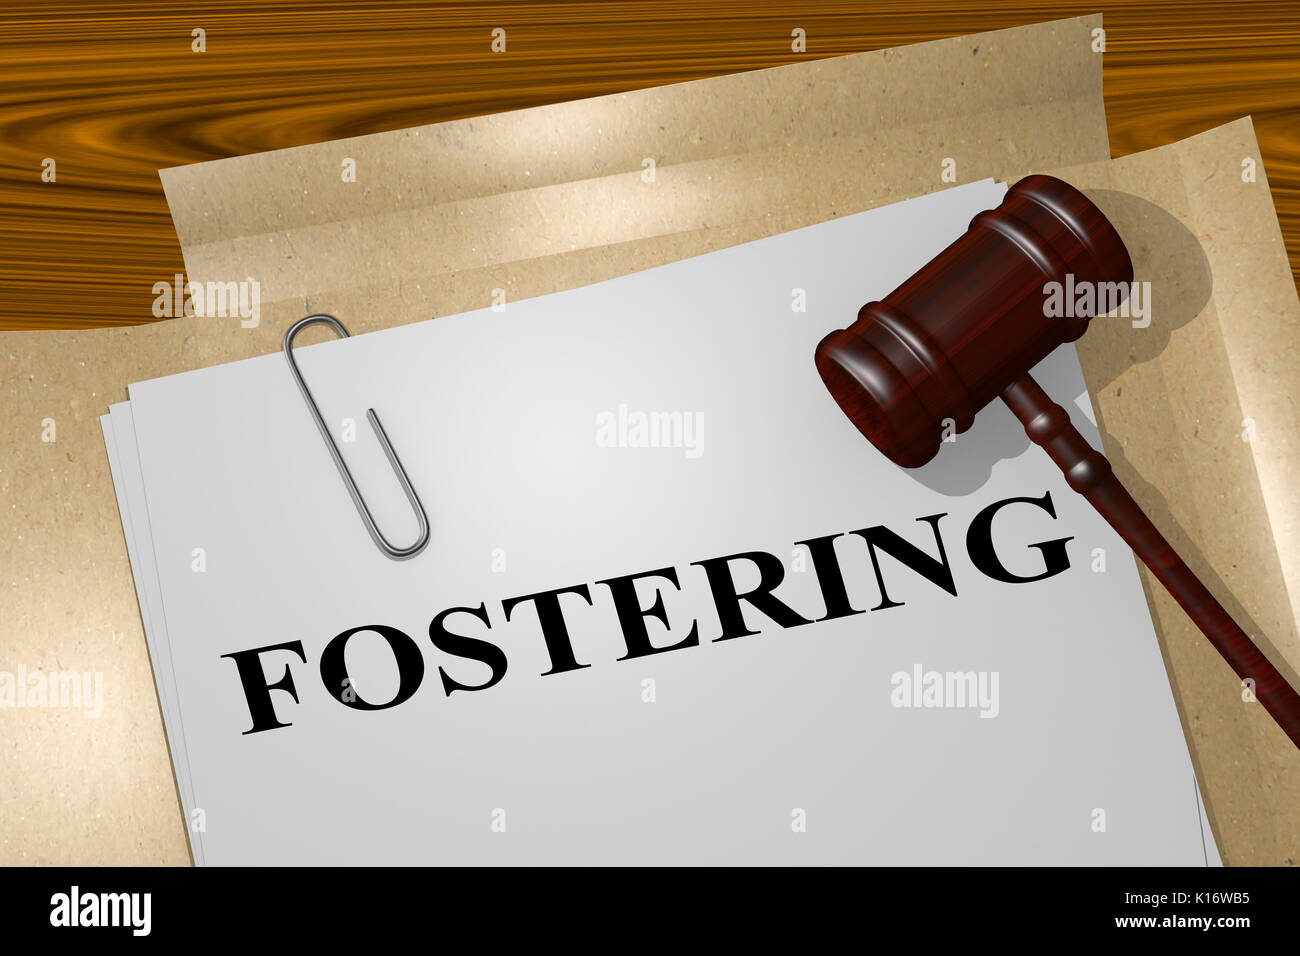 3D illustration of 'FOSTERING' title on legal document - Stock Image